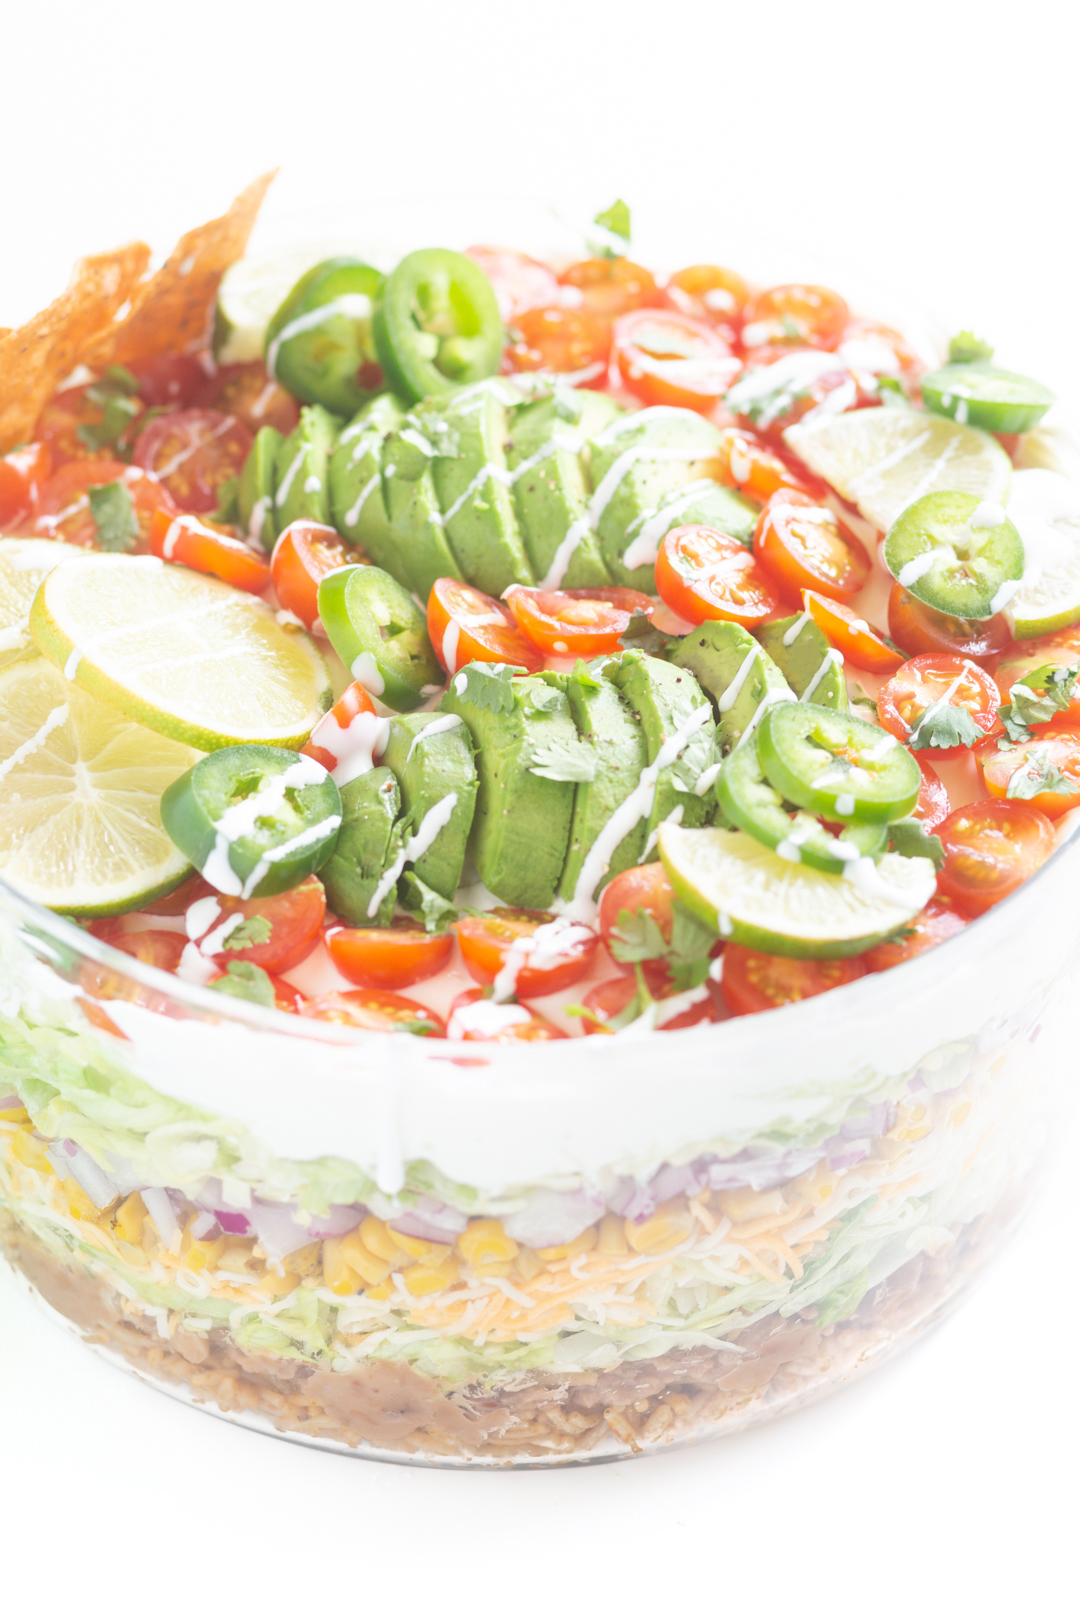 view of top of layered salad with sliced avocados, sliced cherry tomatoes and lime slices.